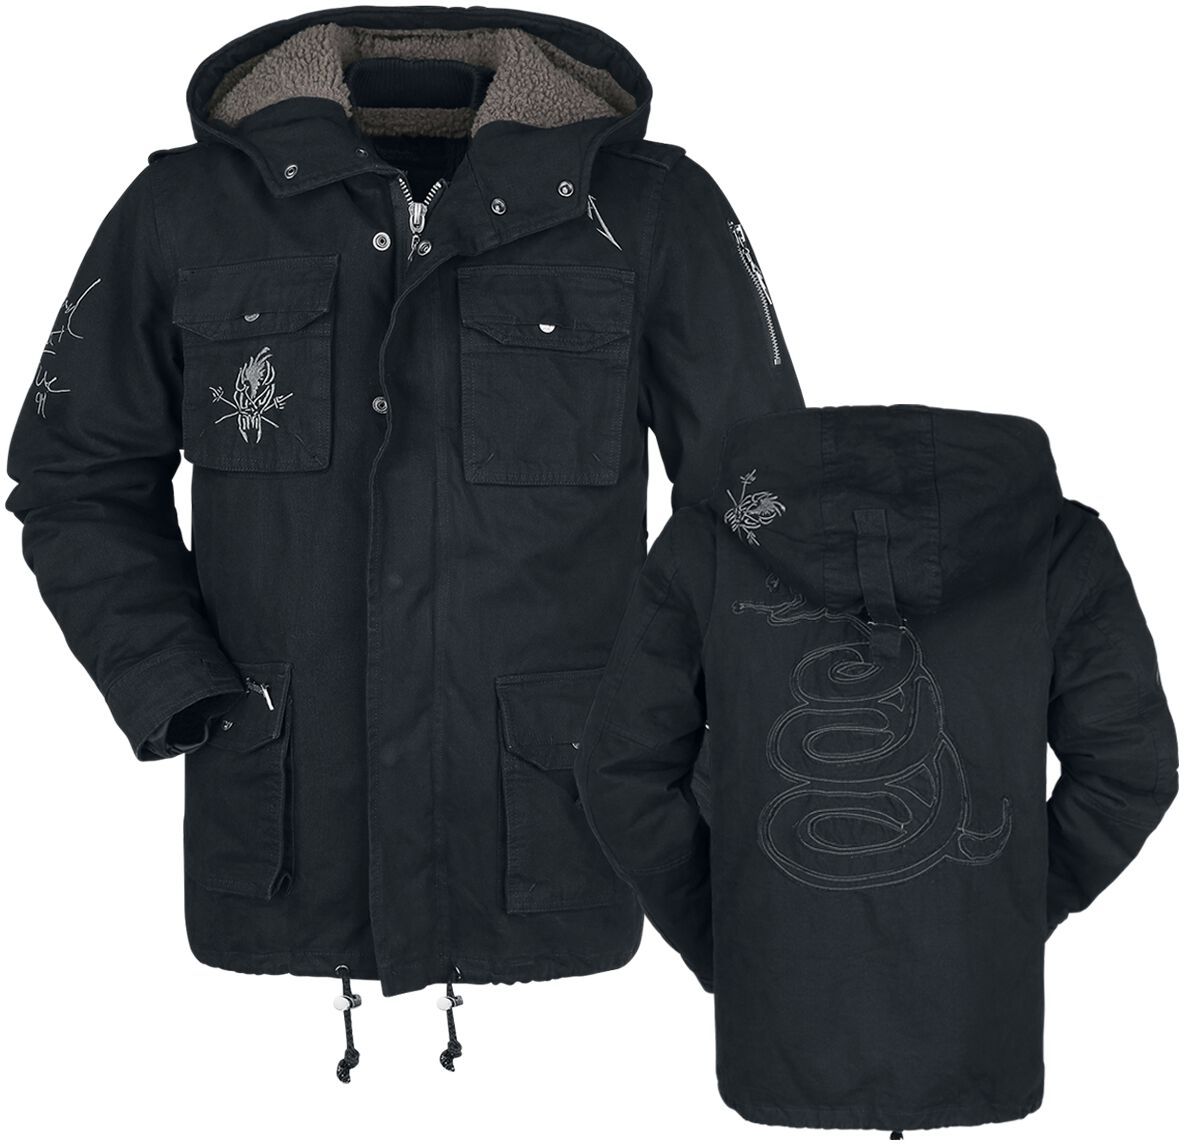 EMP Signature Collection   Metallica Veste d hiver   EMP db174efdb79